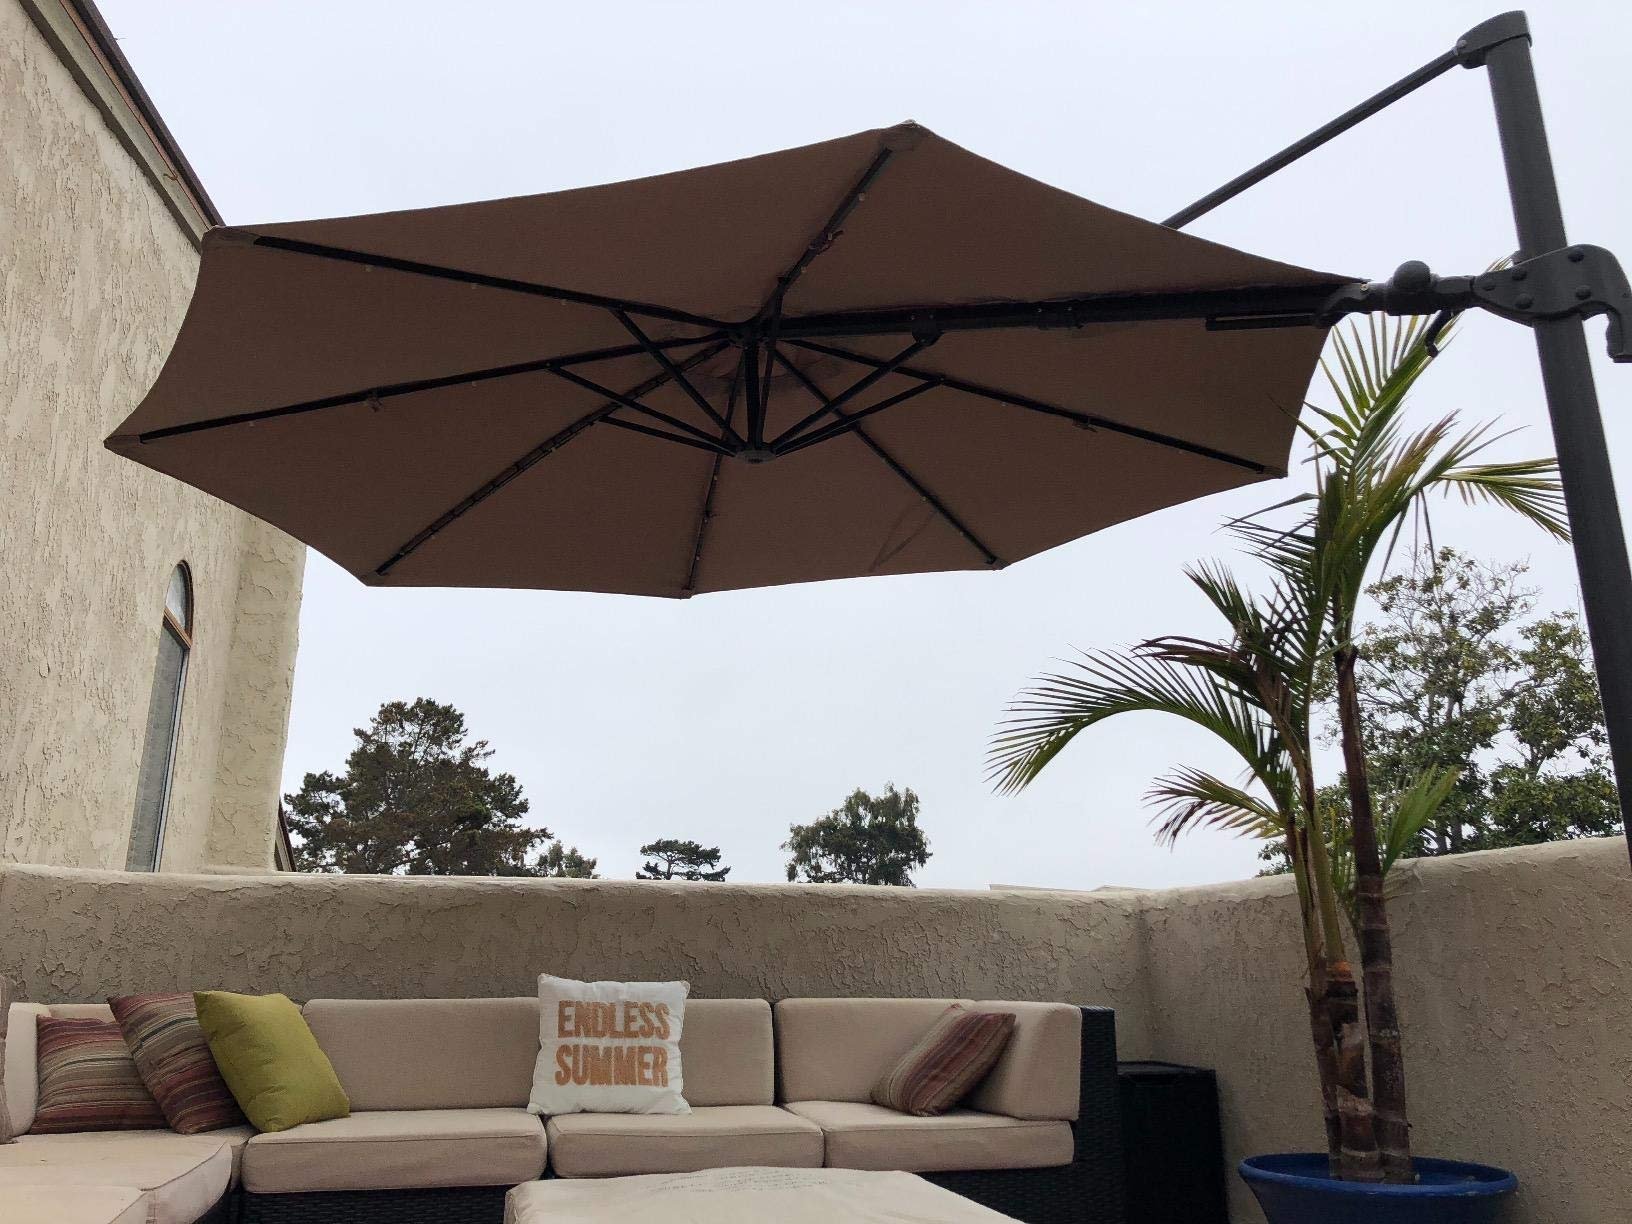 Formosa Covers Replacement Umbrella Canopy for 11ft 8 Rib Supported bar Cantilever Market Outdoor Patio Shades in Taupe Ribs Length 64'' to 66'' (Canopy Only) by Formosa Covers (Image #6)